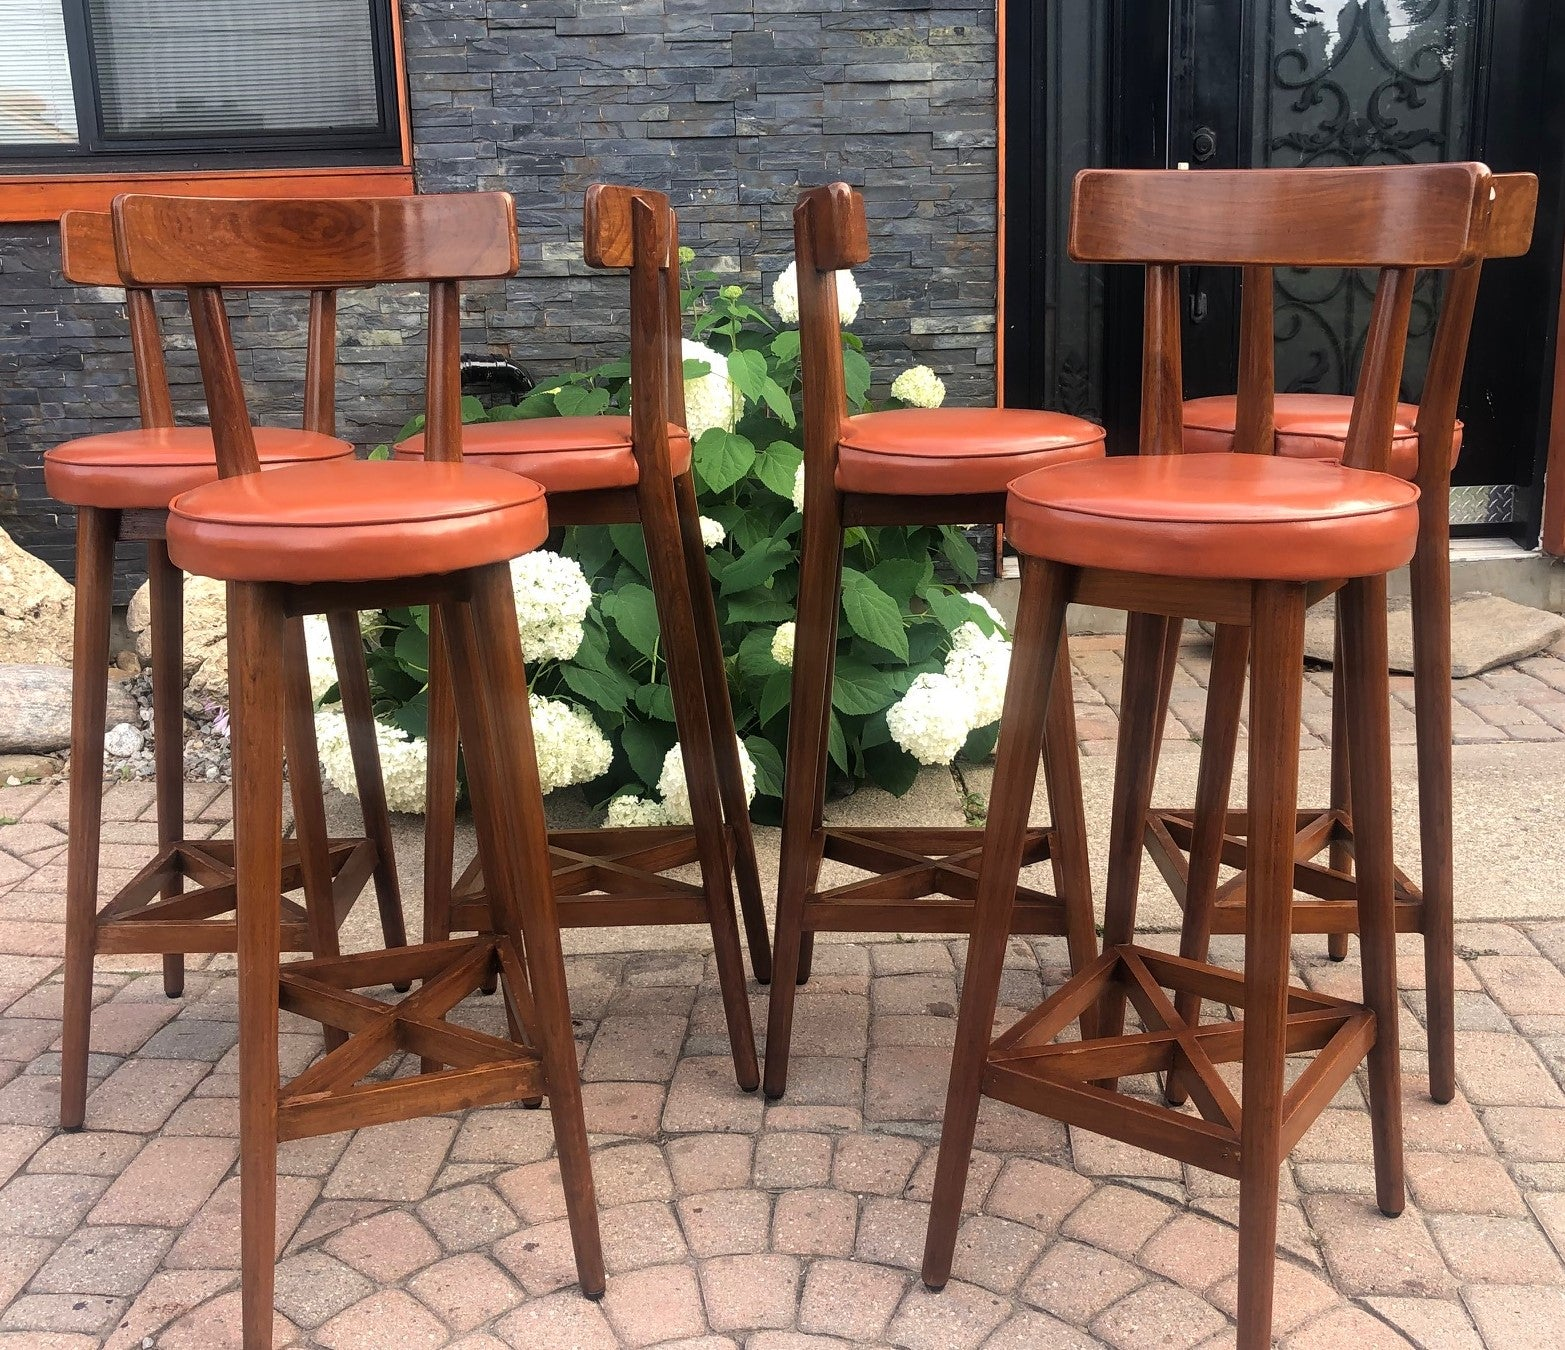 6 Mcm Teak Bar Stools In Great Condition Each 99 Mid